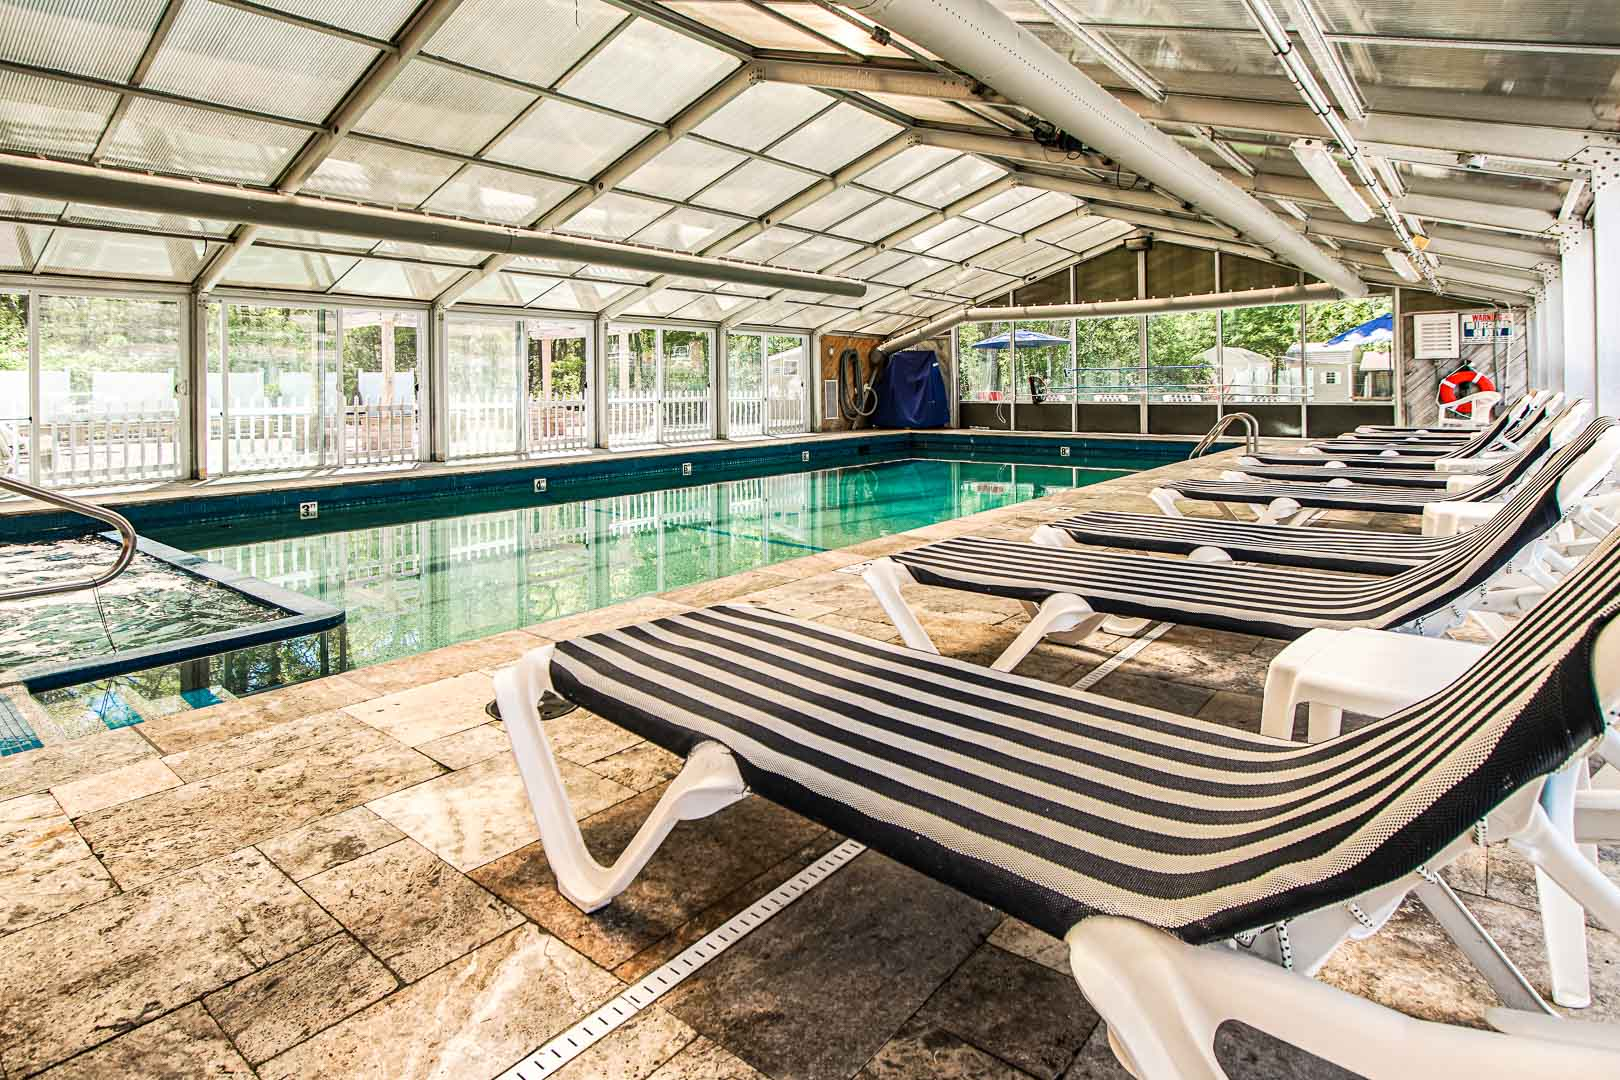 An expansive indoor swimming pool at VRI's Cape Winds Resort in Massachusetts.